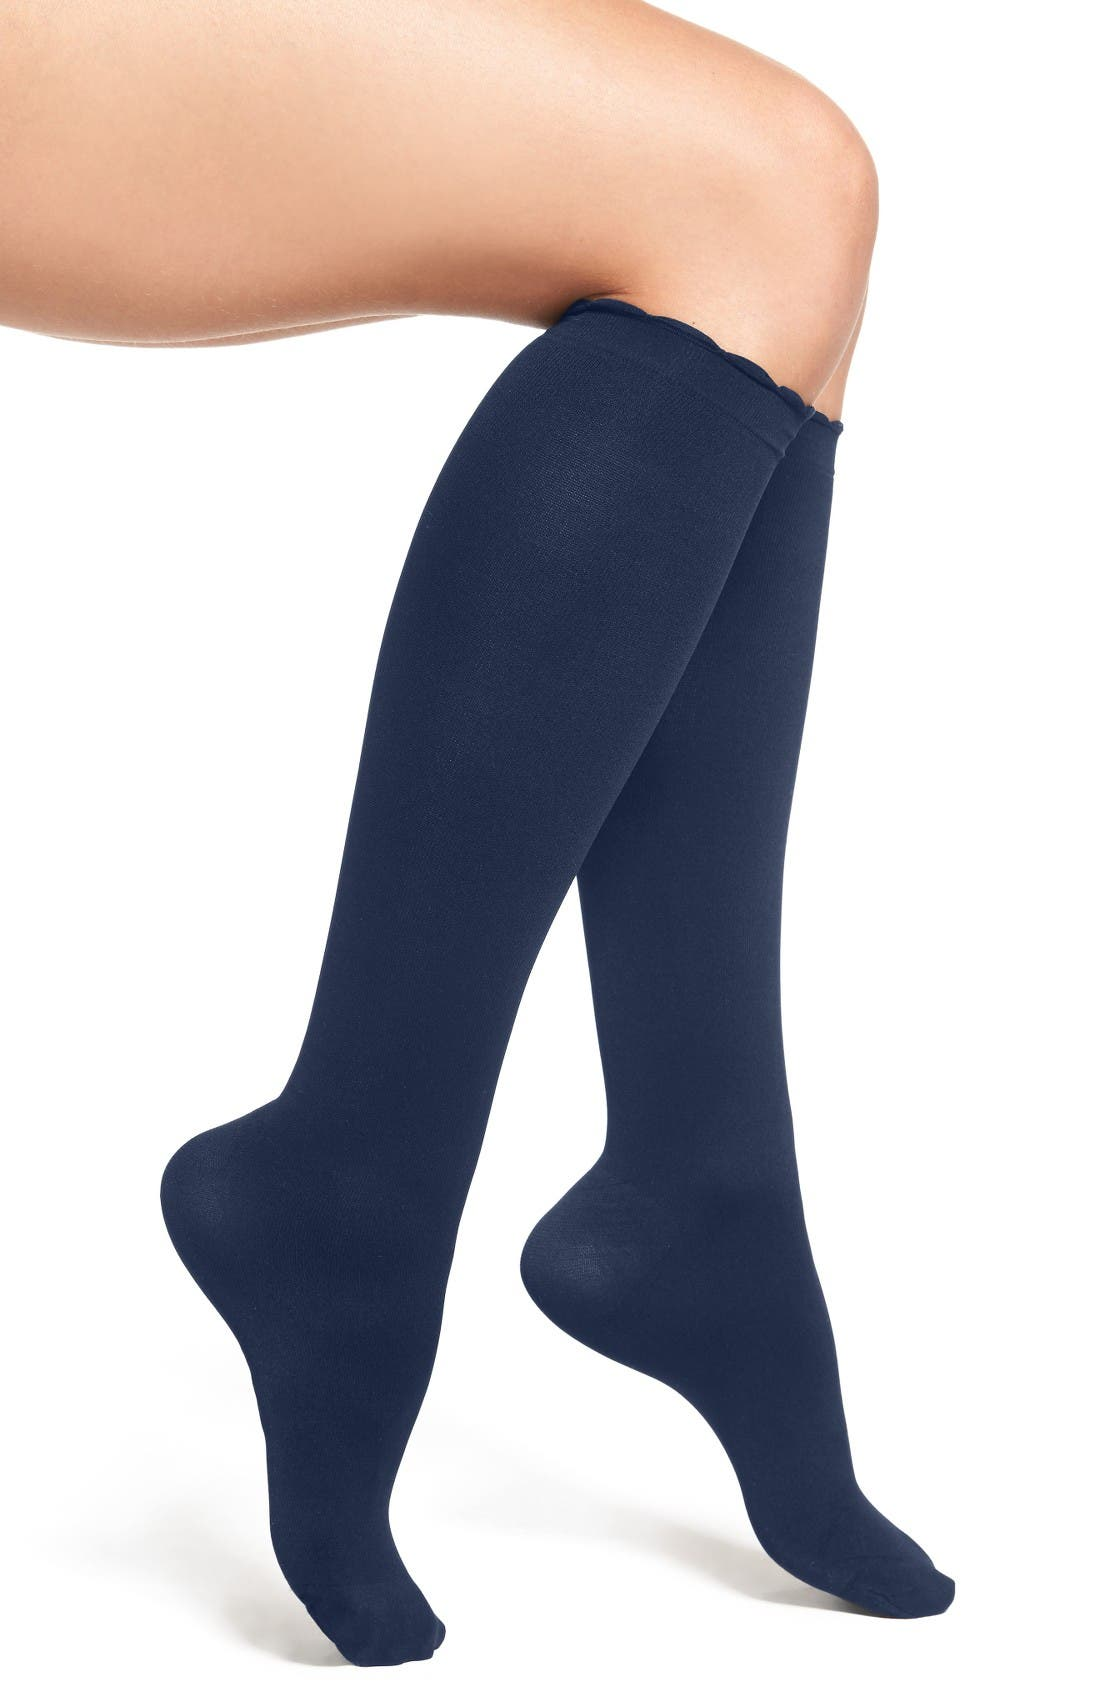 NORDSTROM, Compression Trouser Socks, Main thumbnail 1, color, NAVY